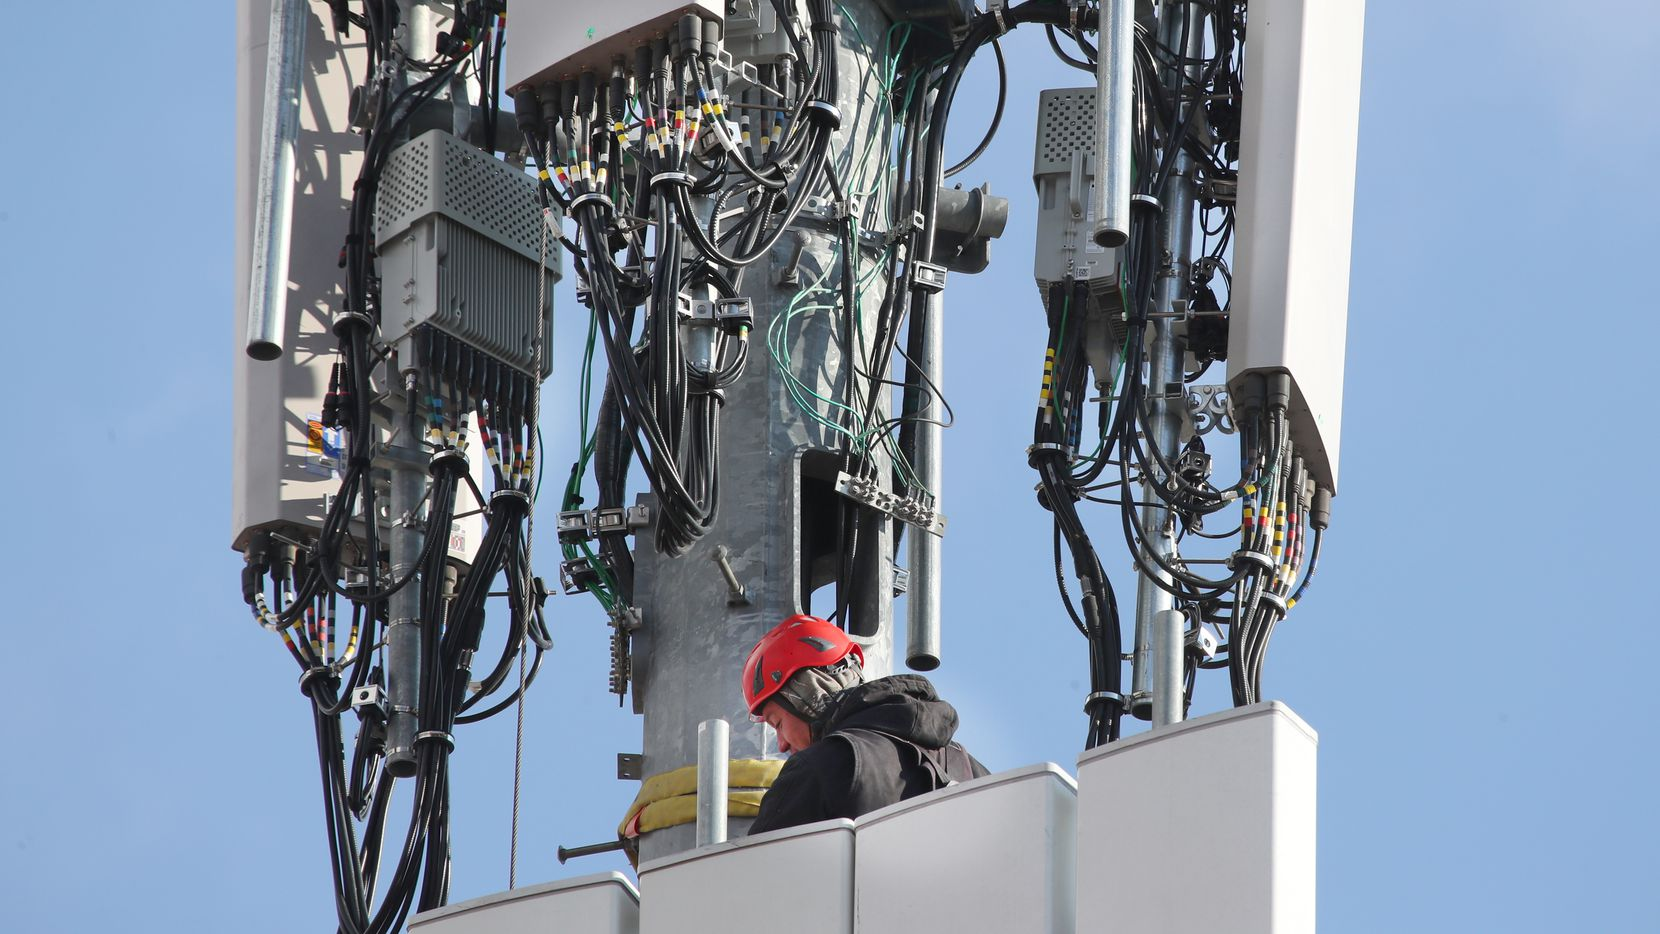 In this file photo, a worker rebuilds a cellular tower with 5G equipment for the Verizon network in Orem, Utah. (Photo by George Frey/Getty Images)